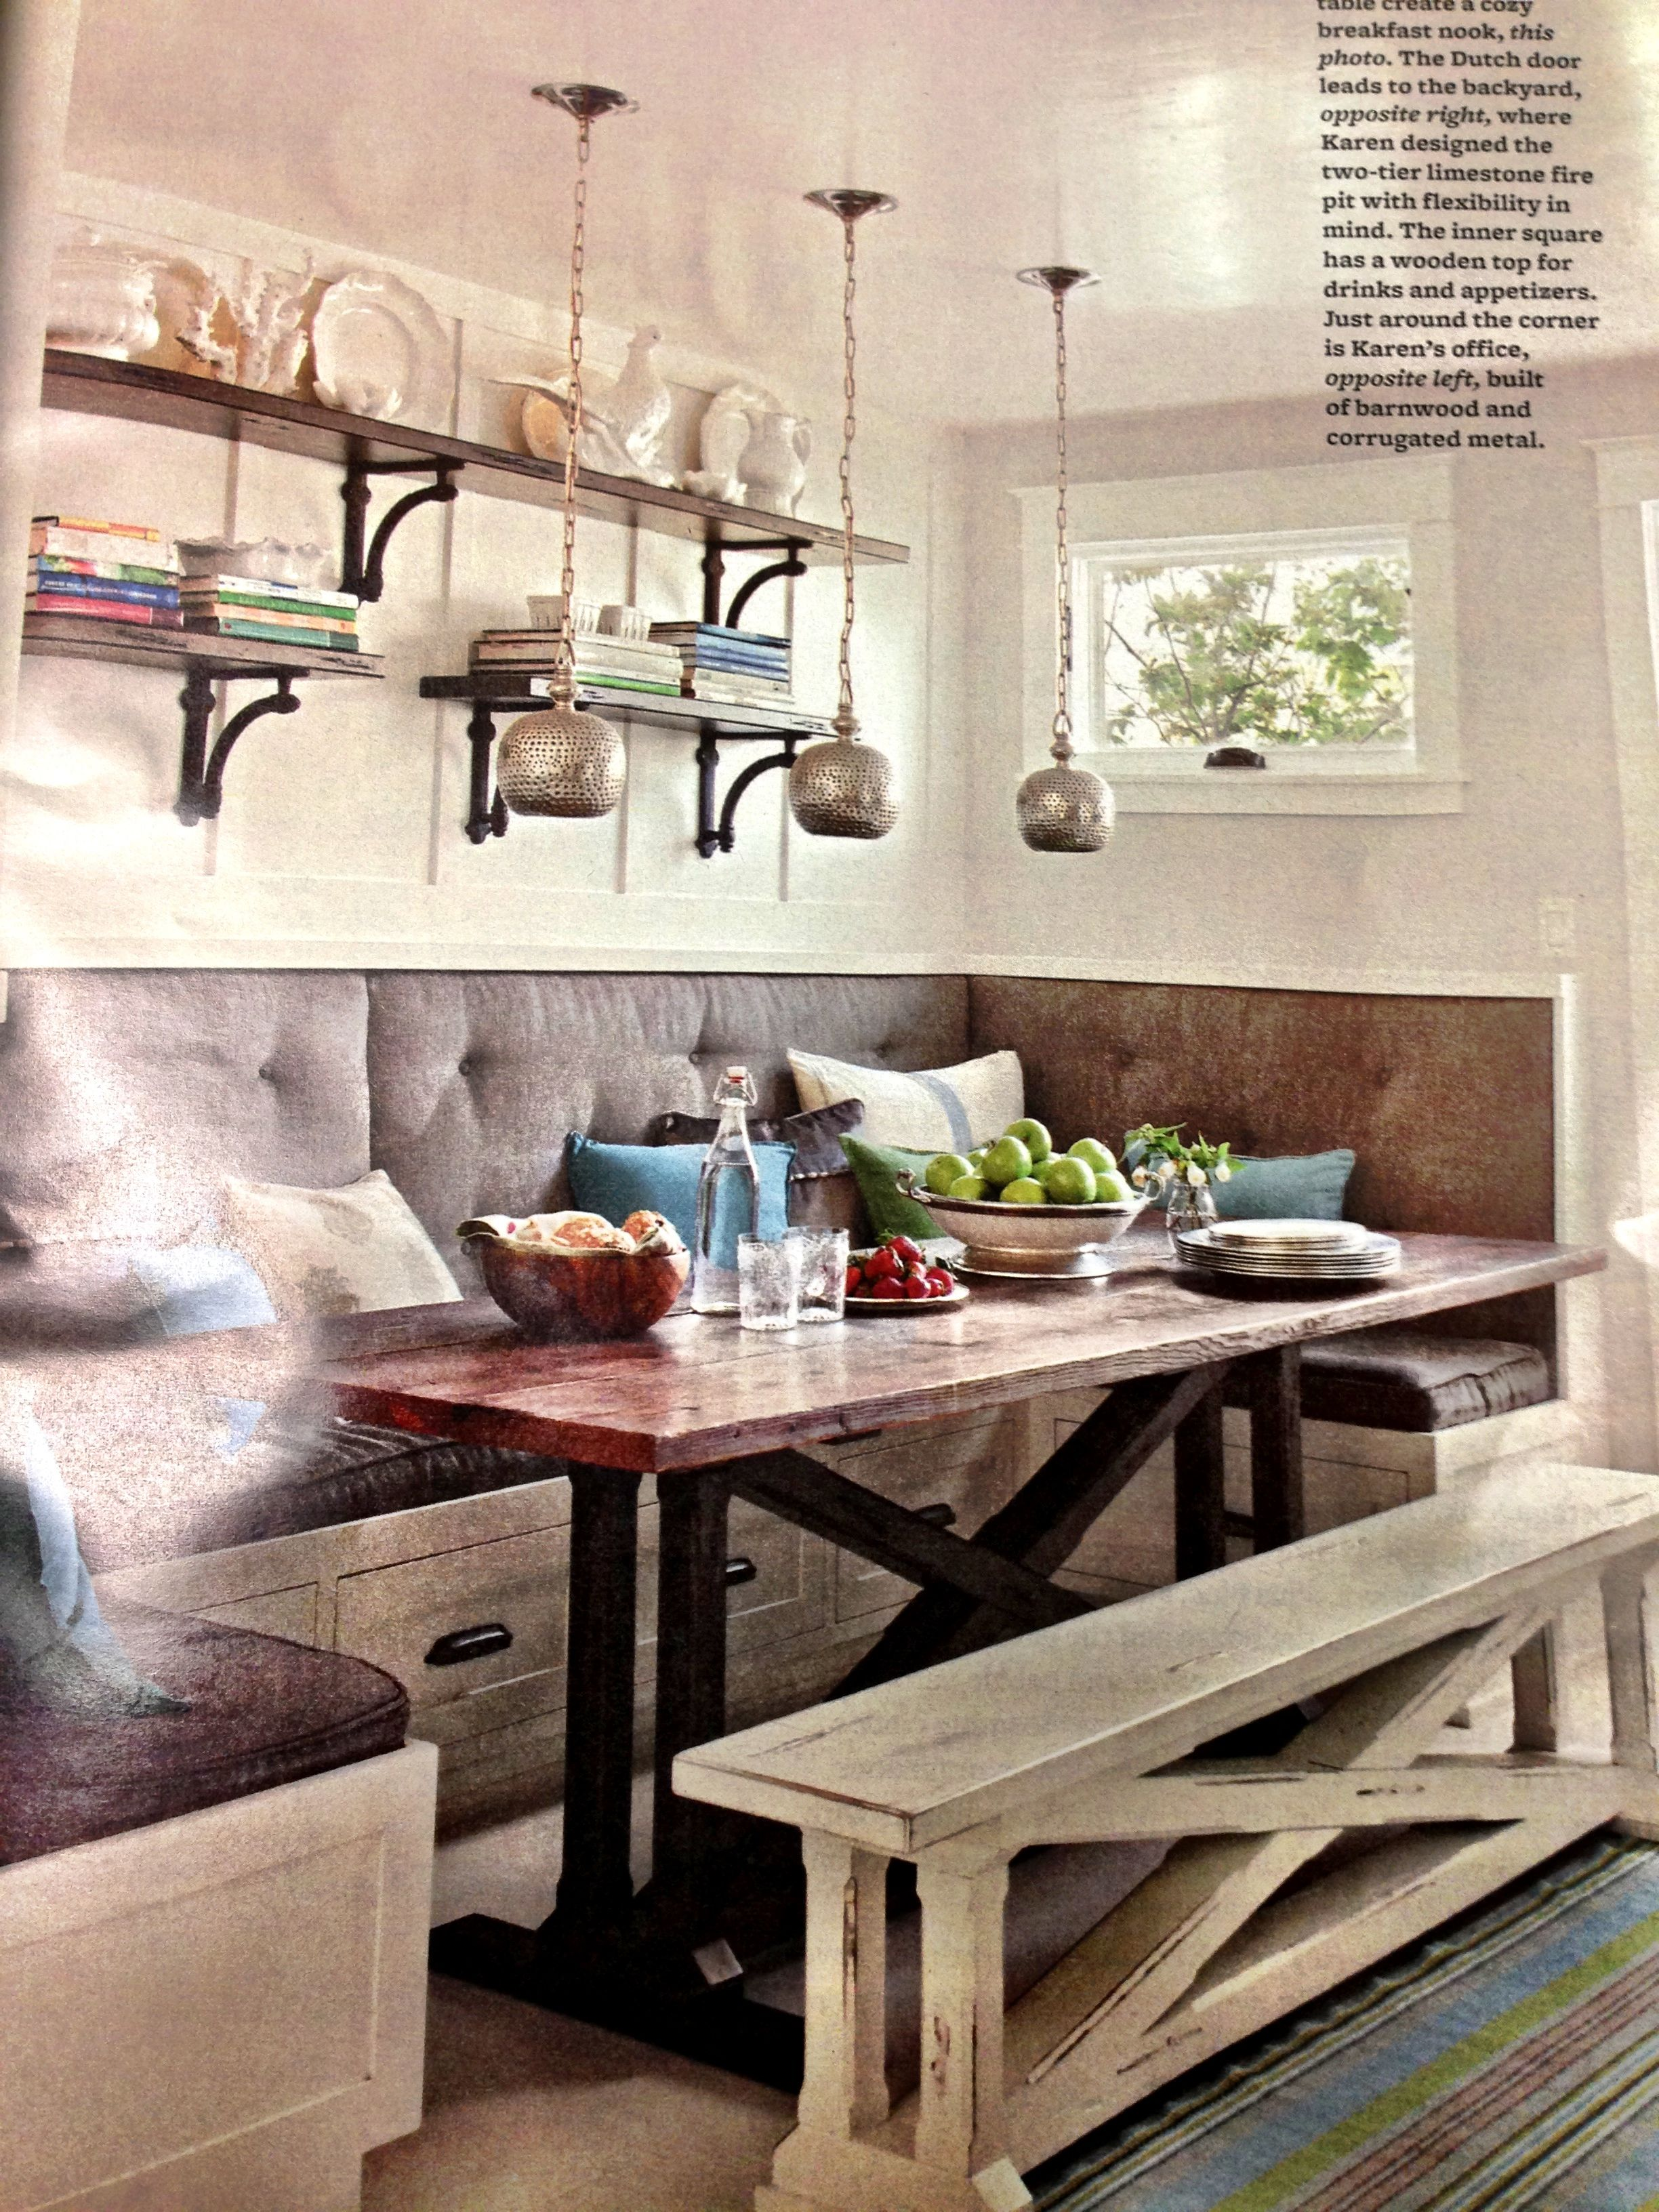 kitchen booths ikea metal shelves possible nook i love the bench for extra seating it could just slide under table when not needed